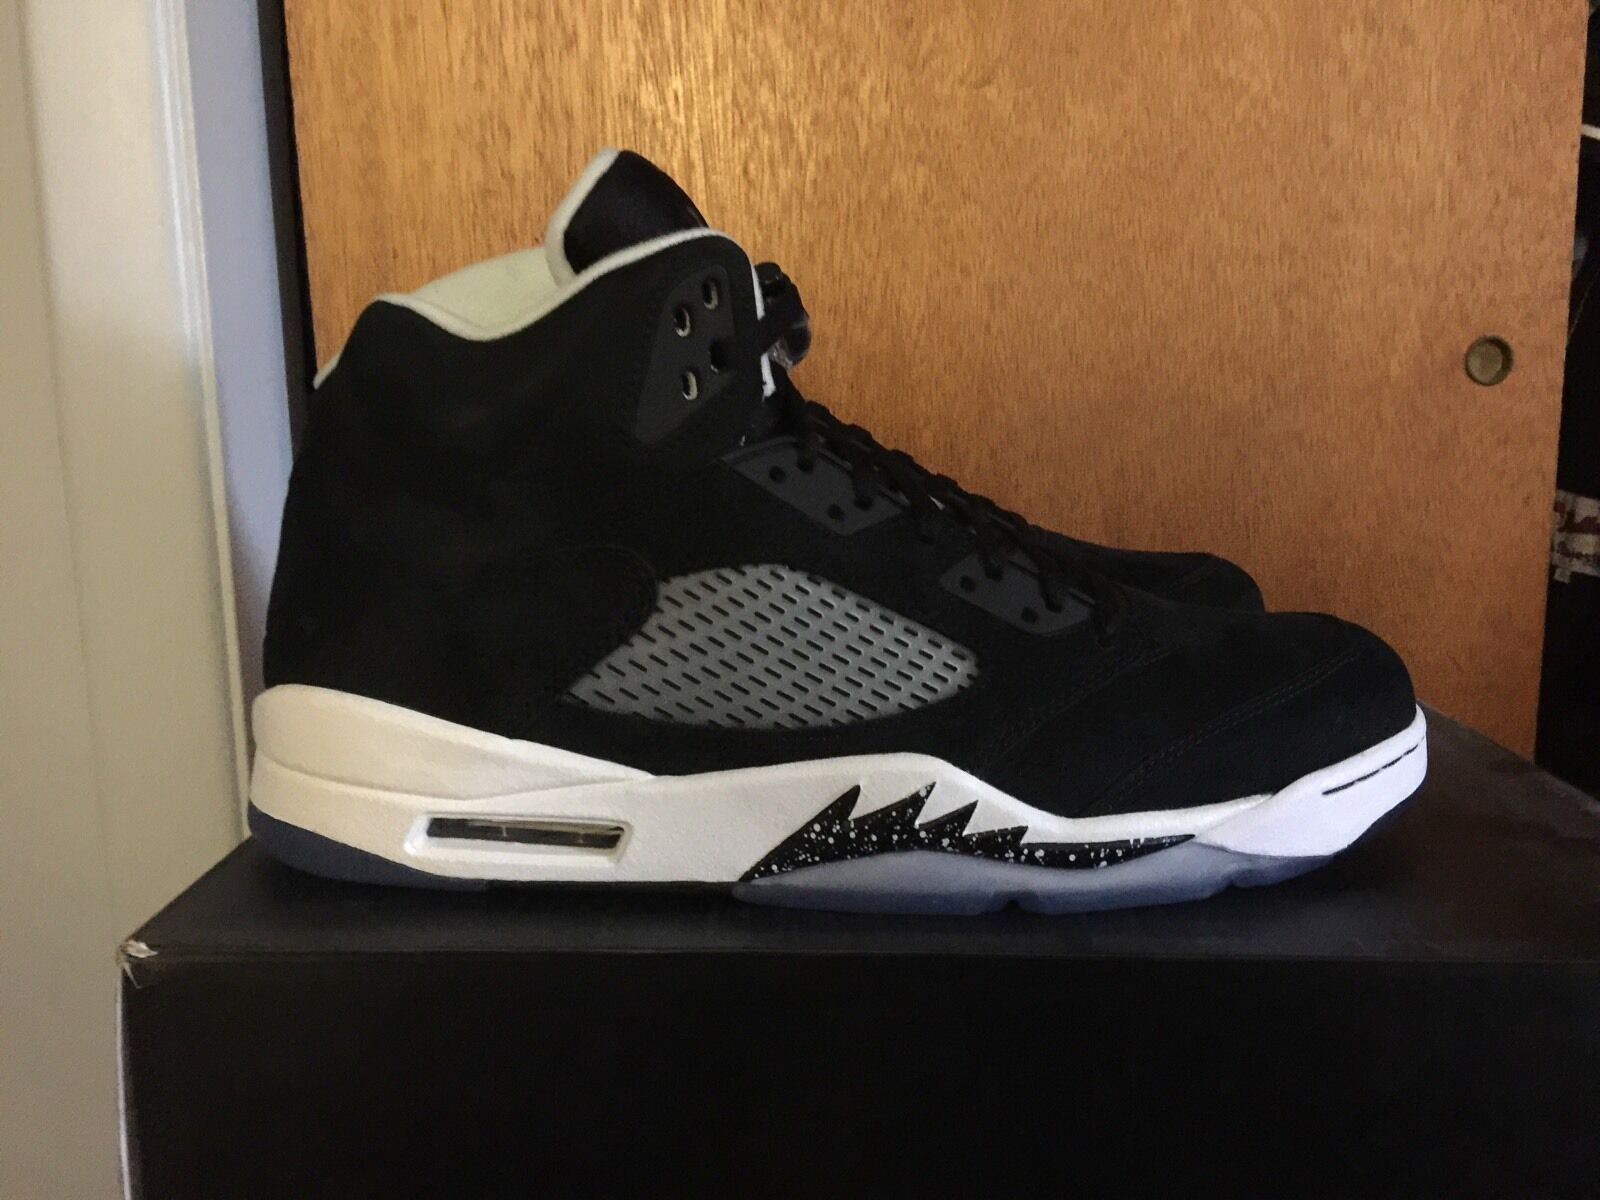 Jordan 5 Oreo DS  Cheap and fashionable